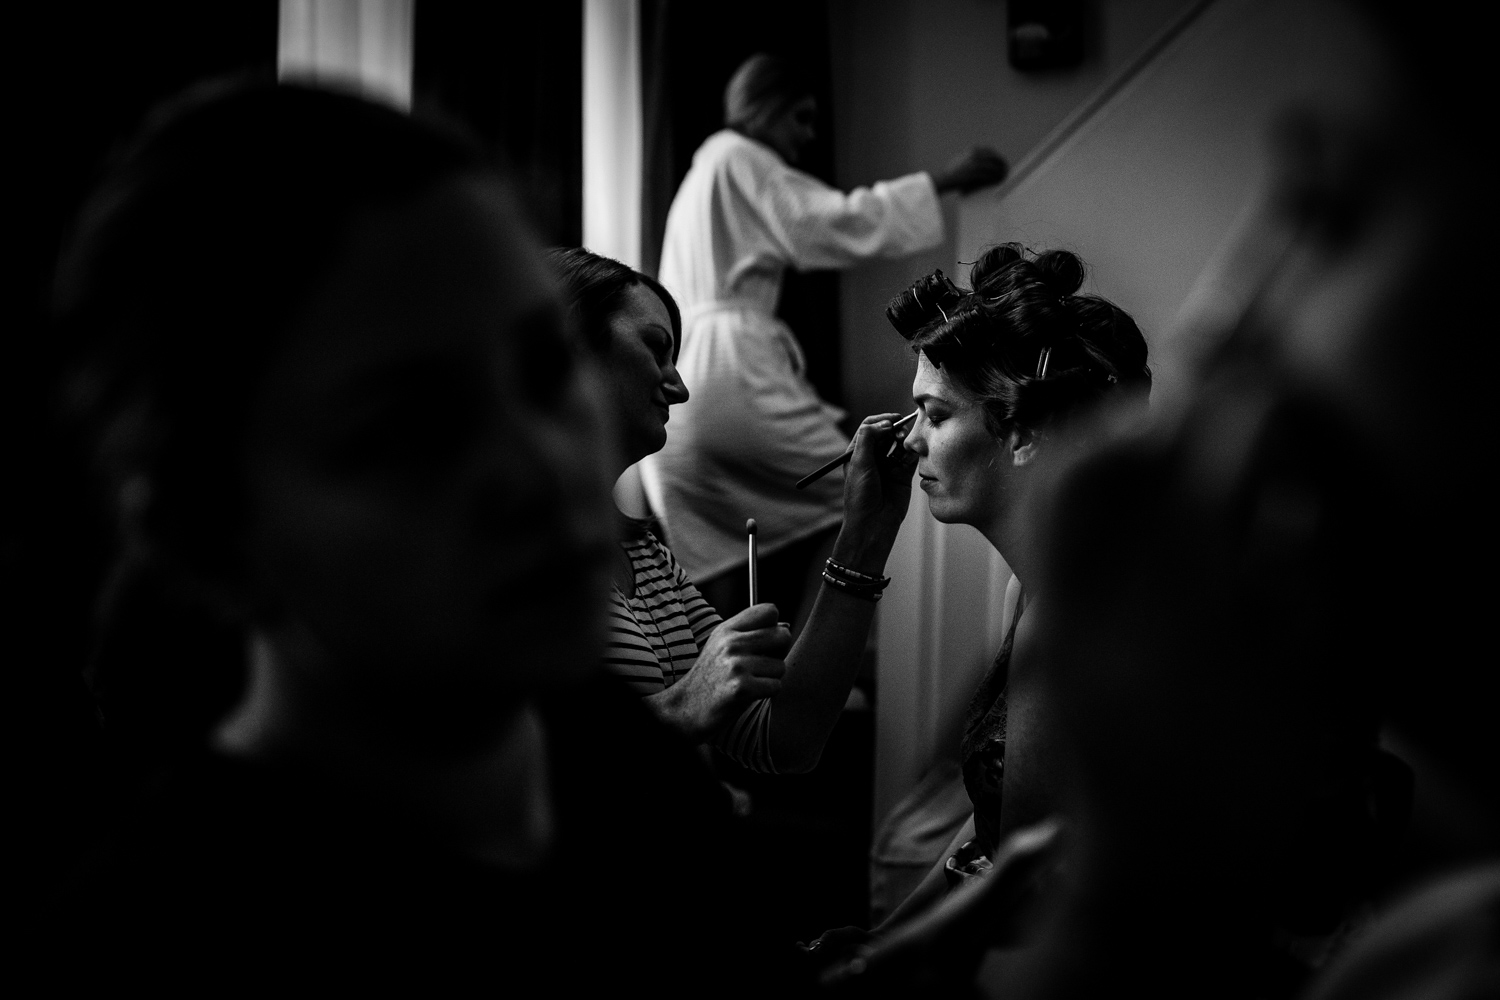 The bridal preparations at Great John Street Hotel